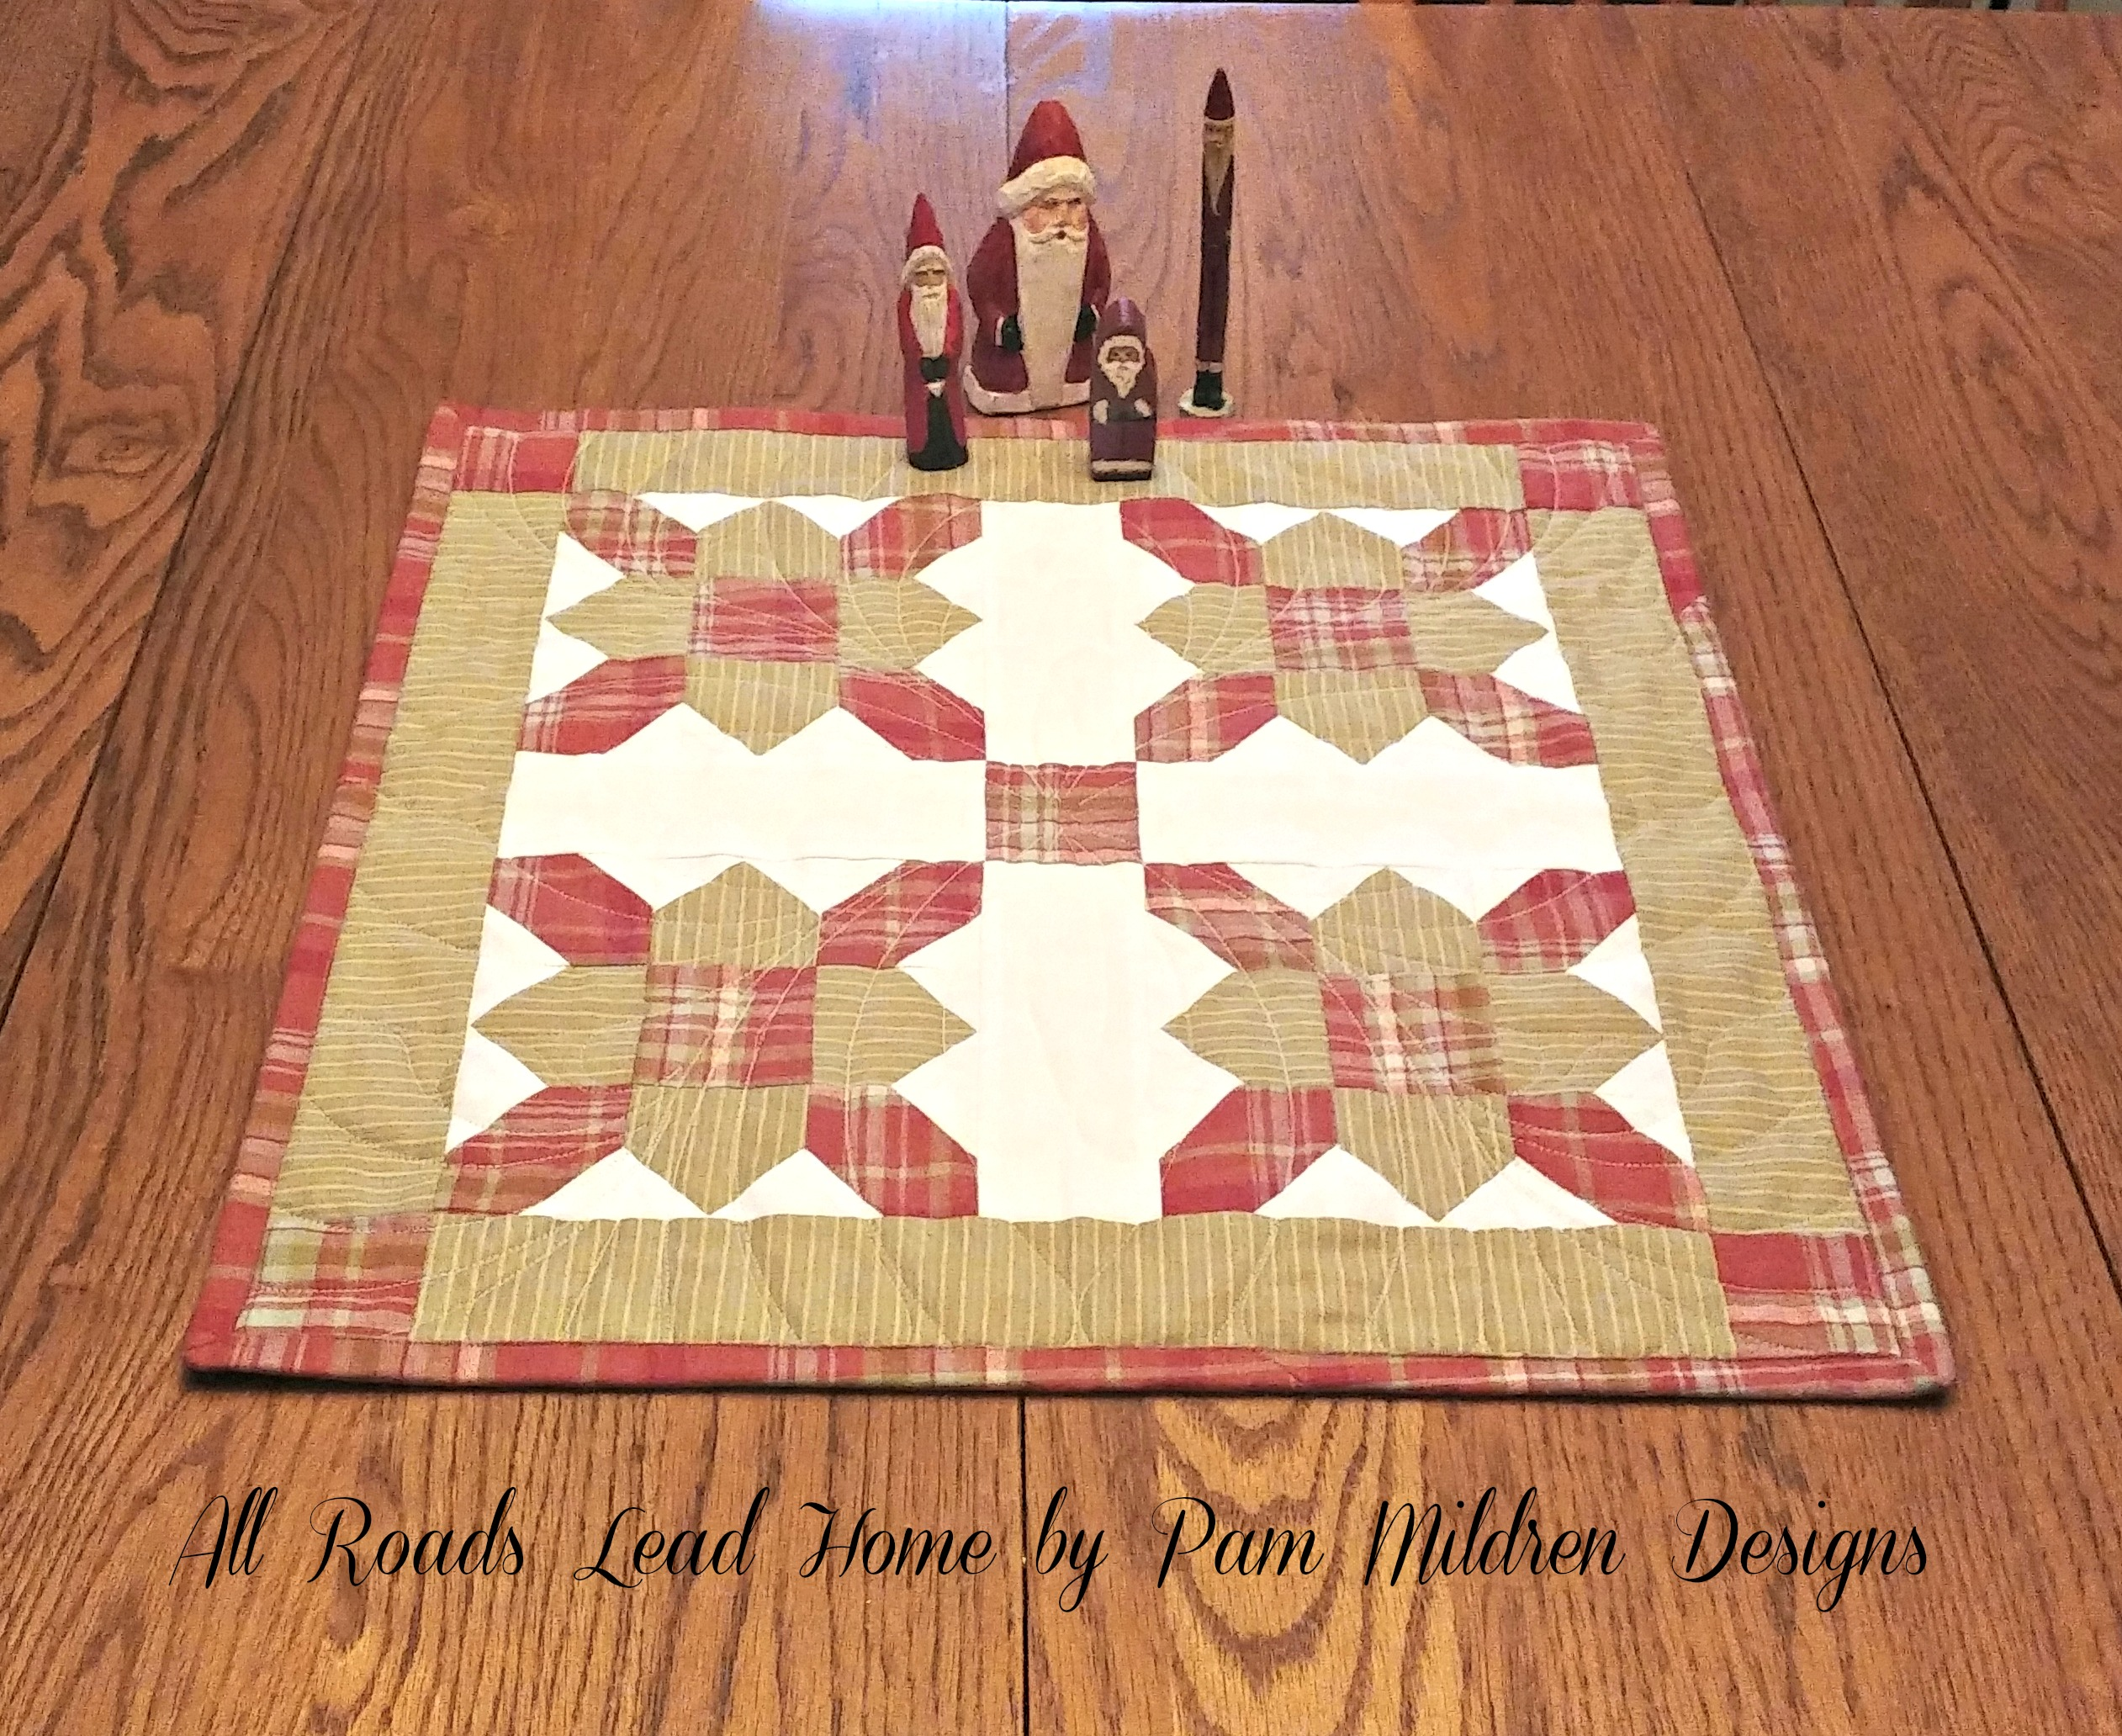 All Roads Lead Home - Free Pattern Download